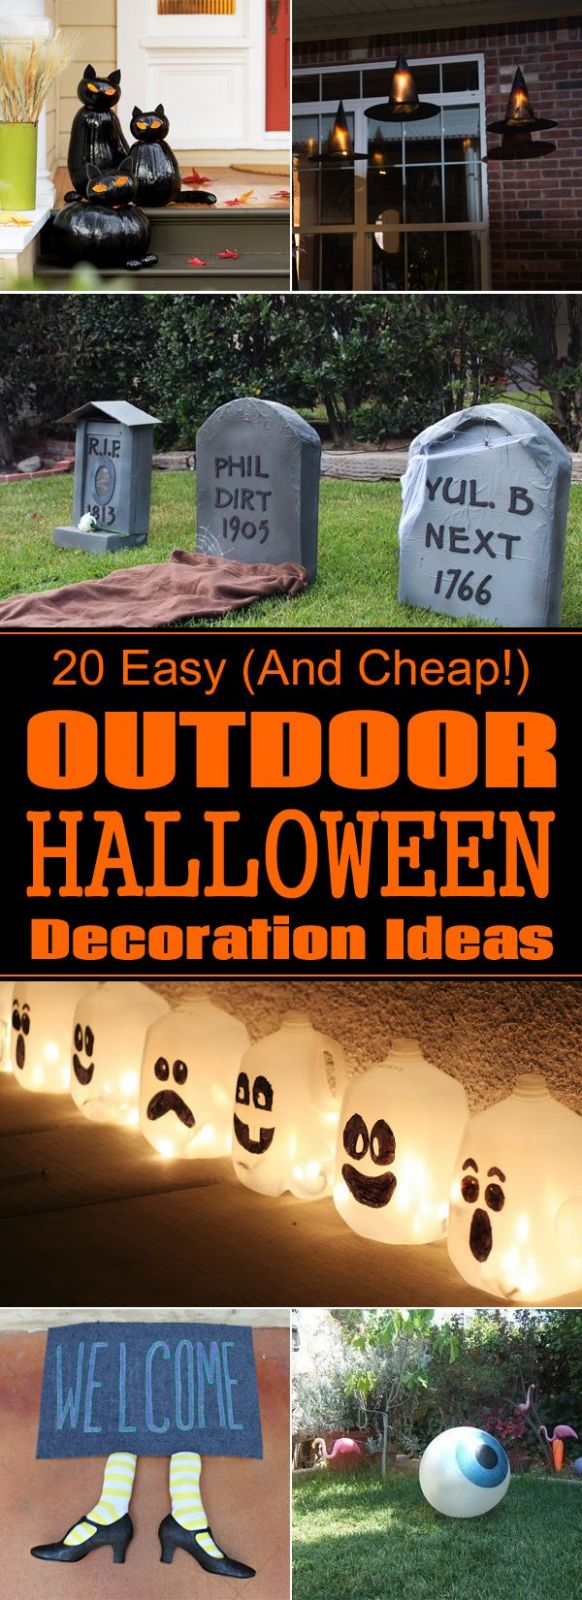 9 Easy (And Cheap!) DIY Outdoor Halloween Decoration Ideas ..